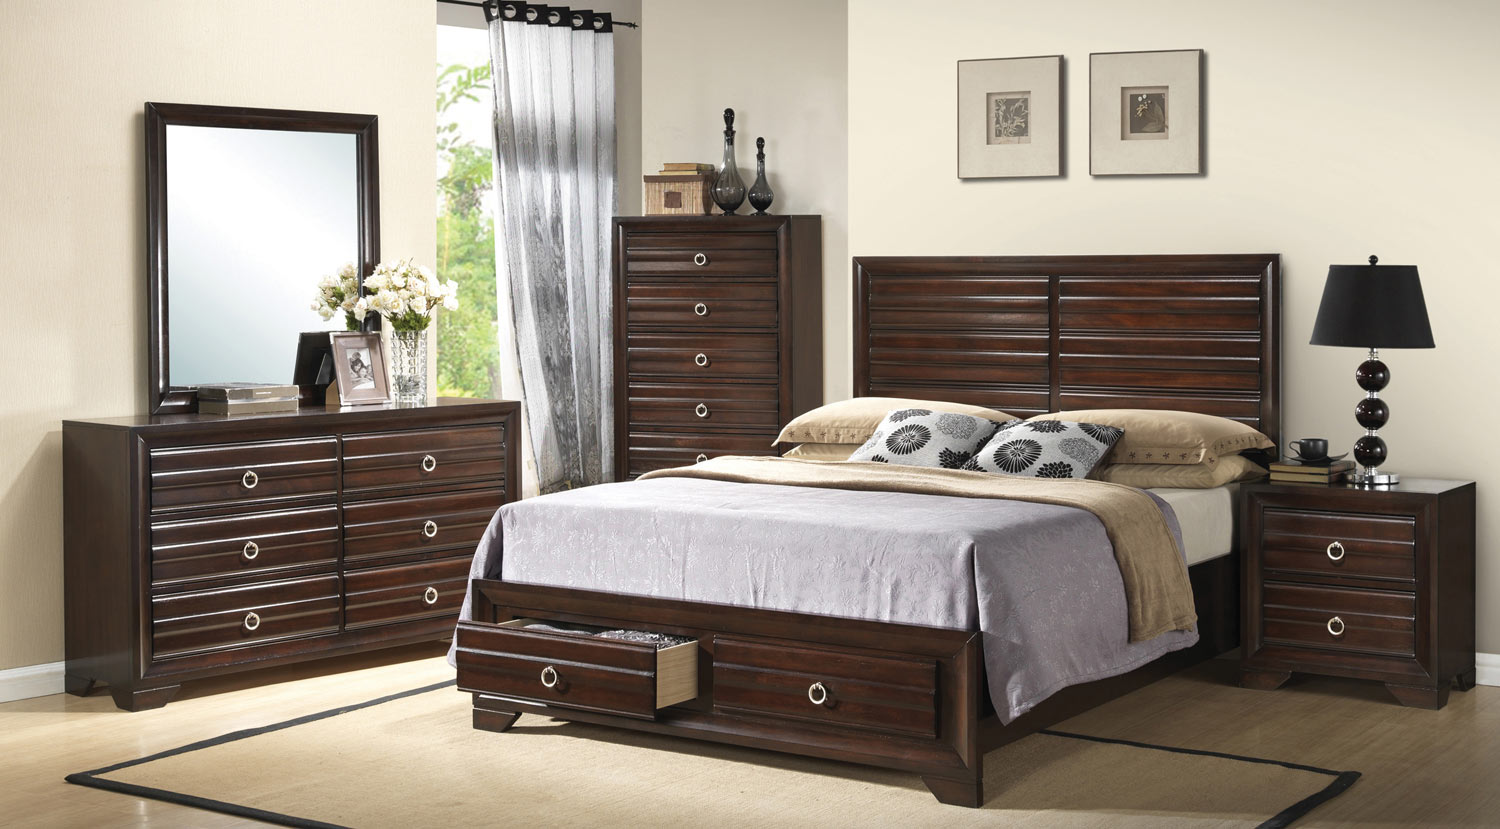 Coaster Bryce Bedroom Set Cappuccino Bed Set at Homelement